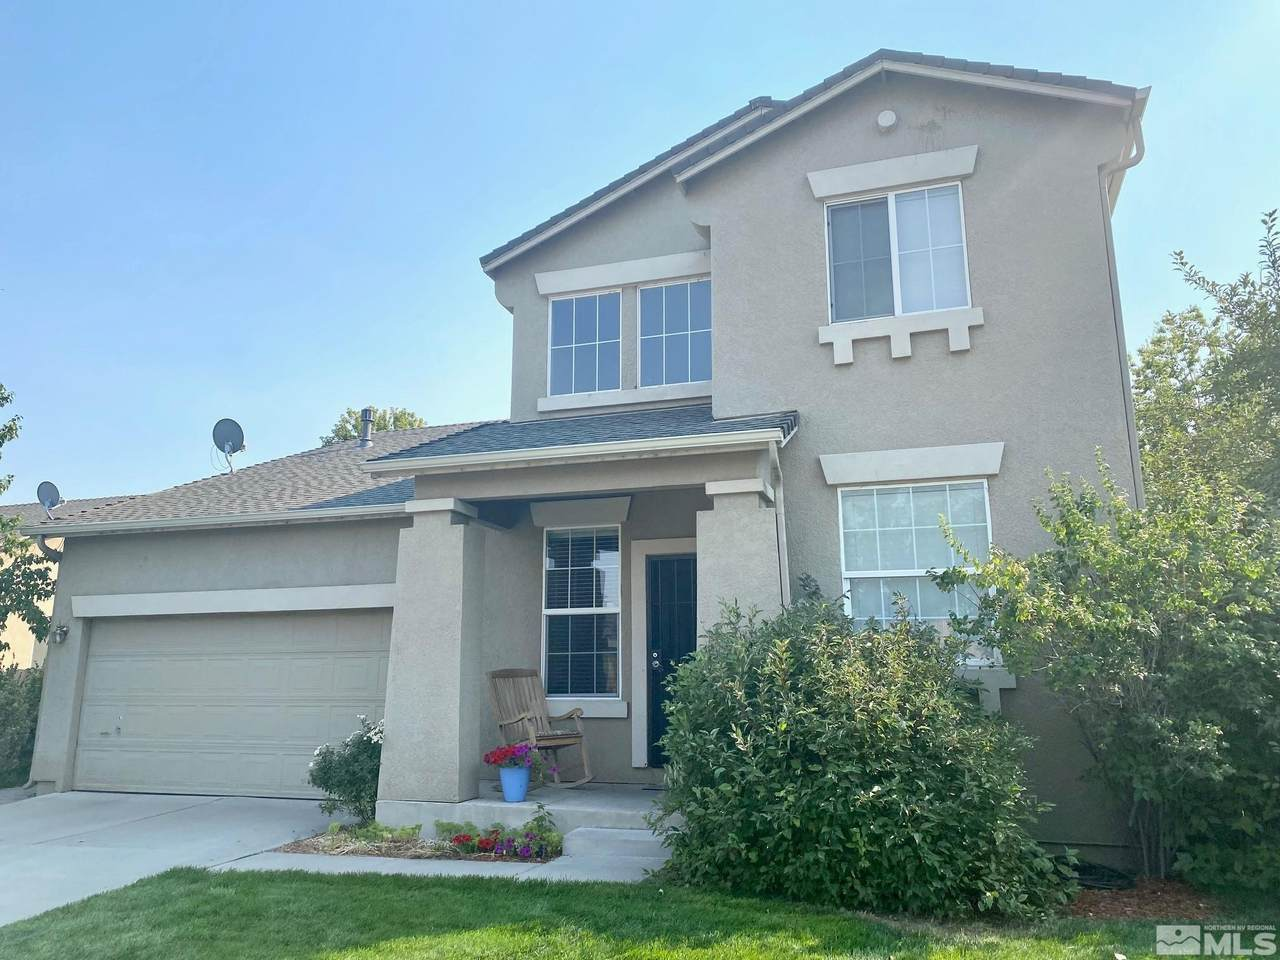 5575 Cathedral Peak Dr. - Photo 1